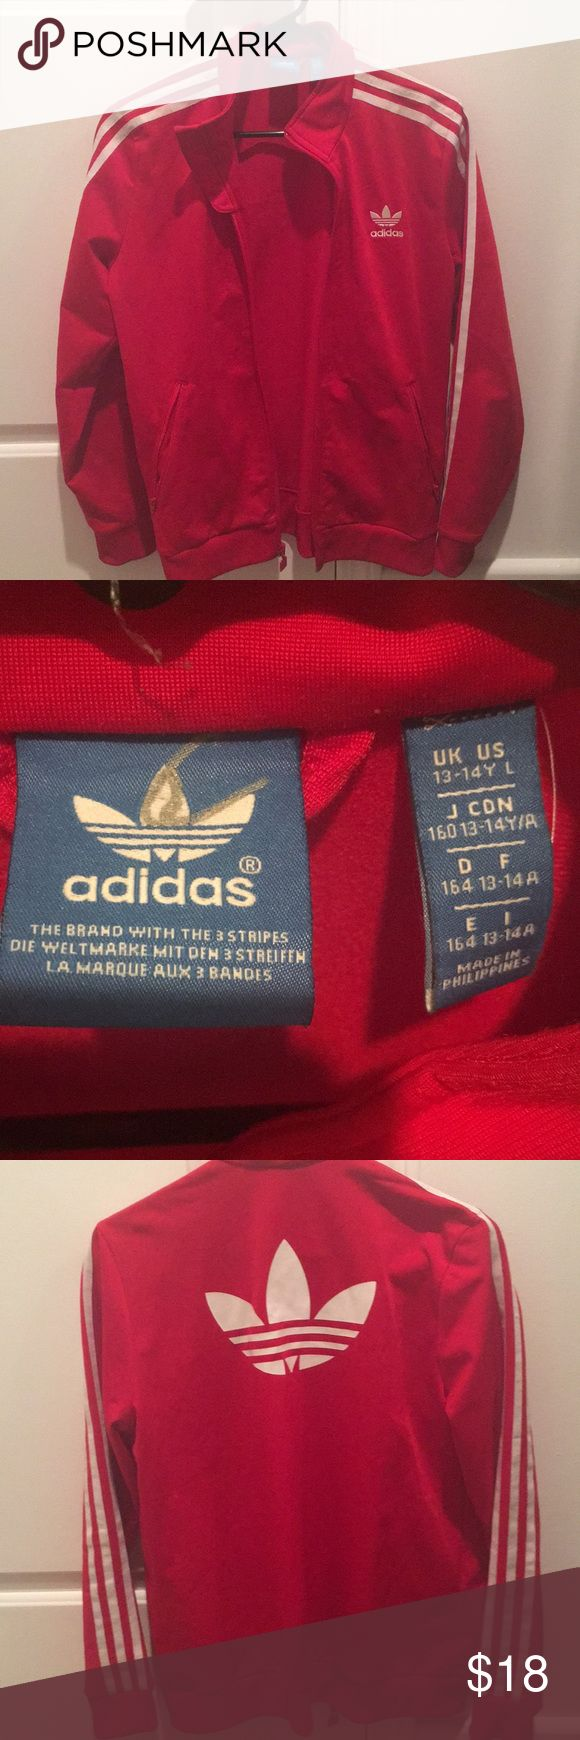 Adidas Red White Striped Small Zip Up Jacket Youth large but fits like a women's xs-small adidas Jackets & Coats